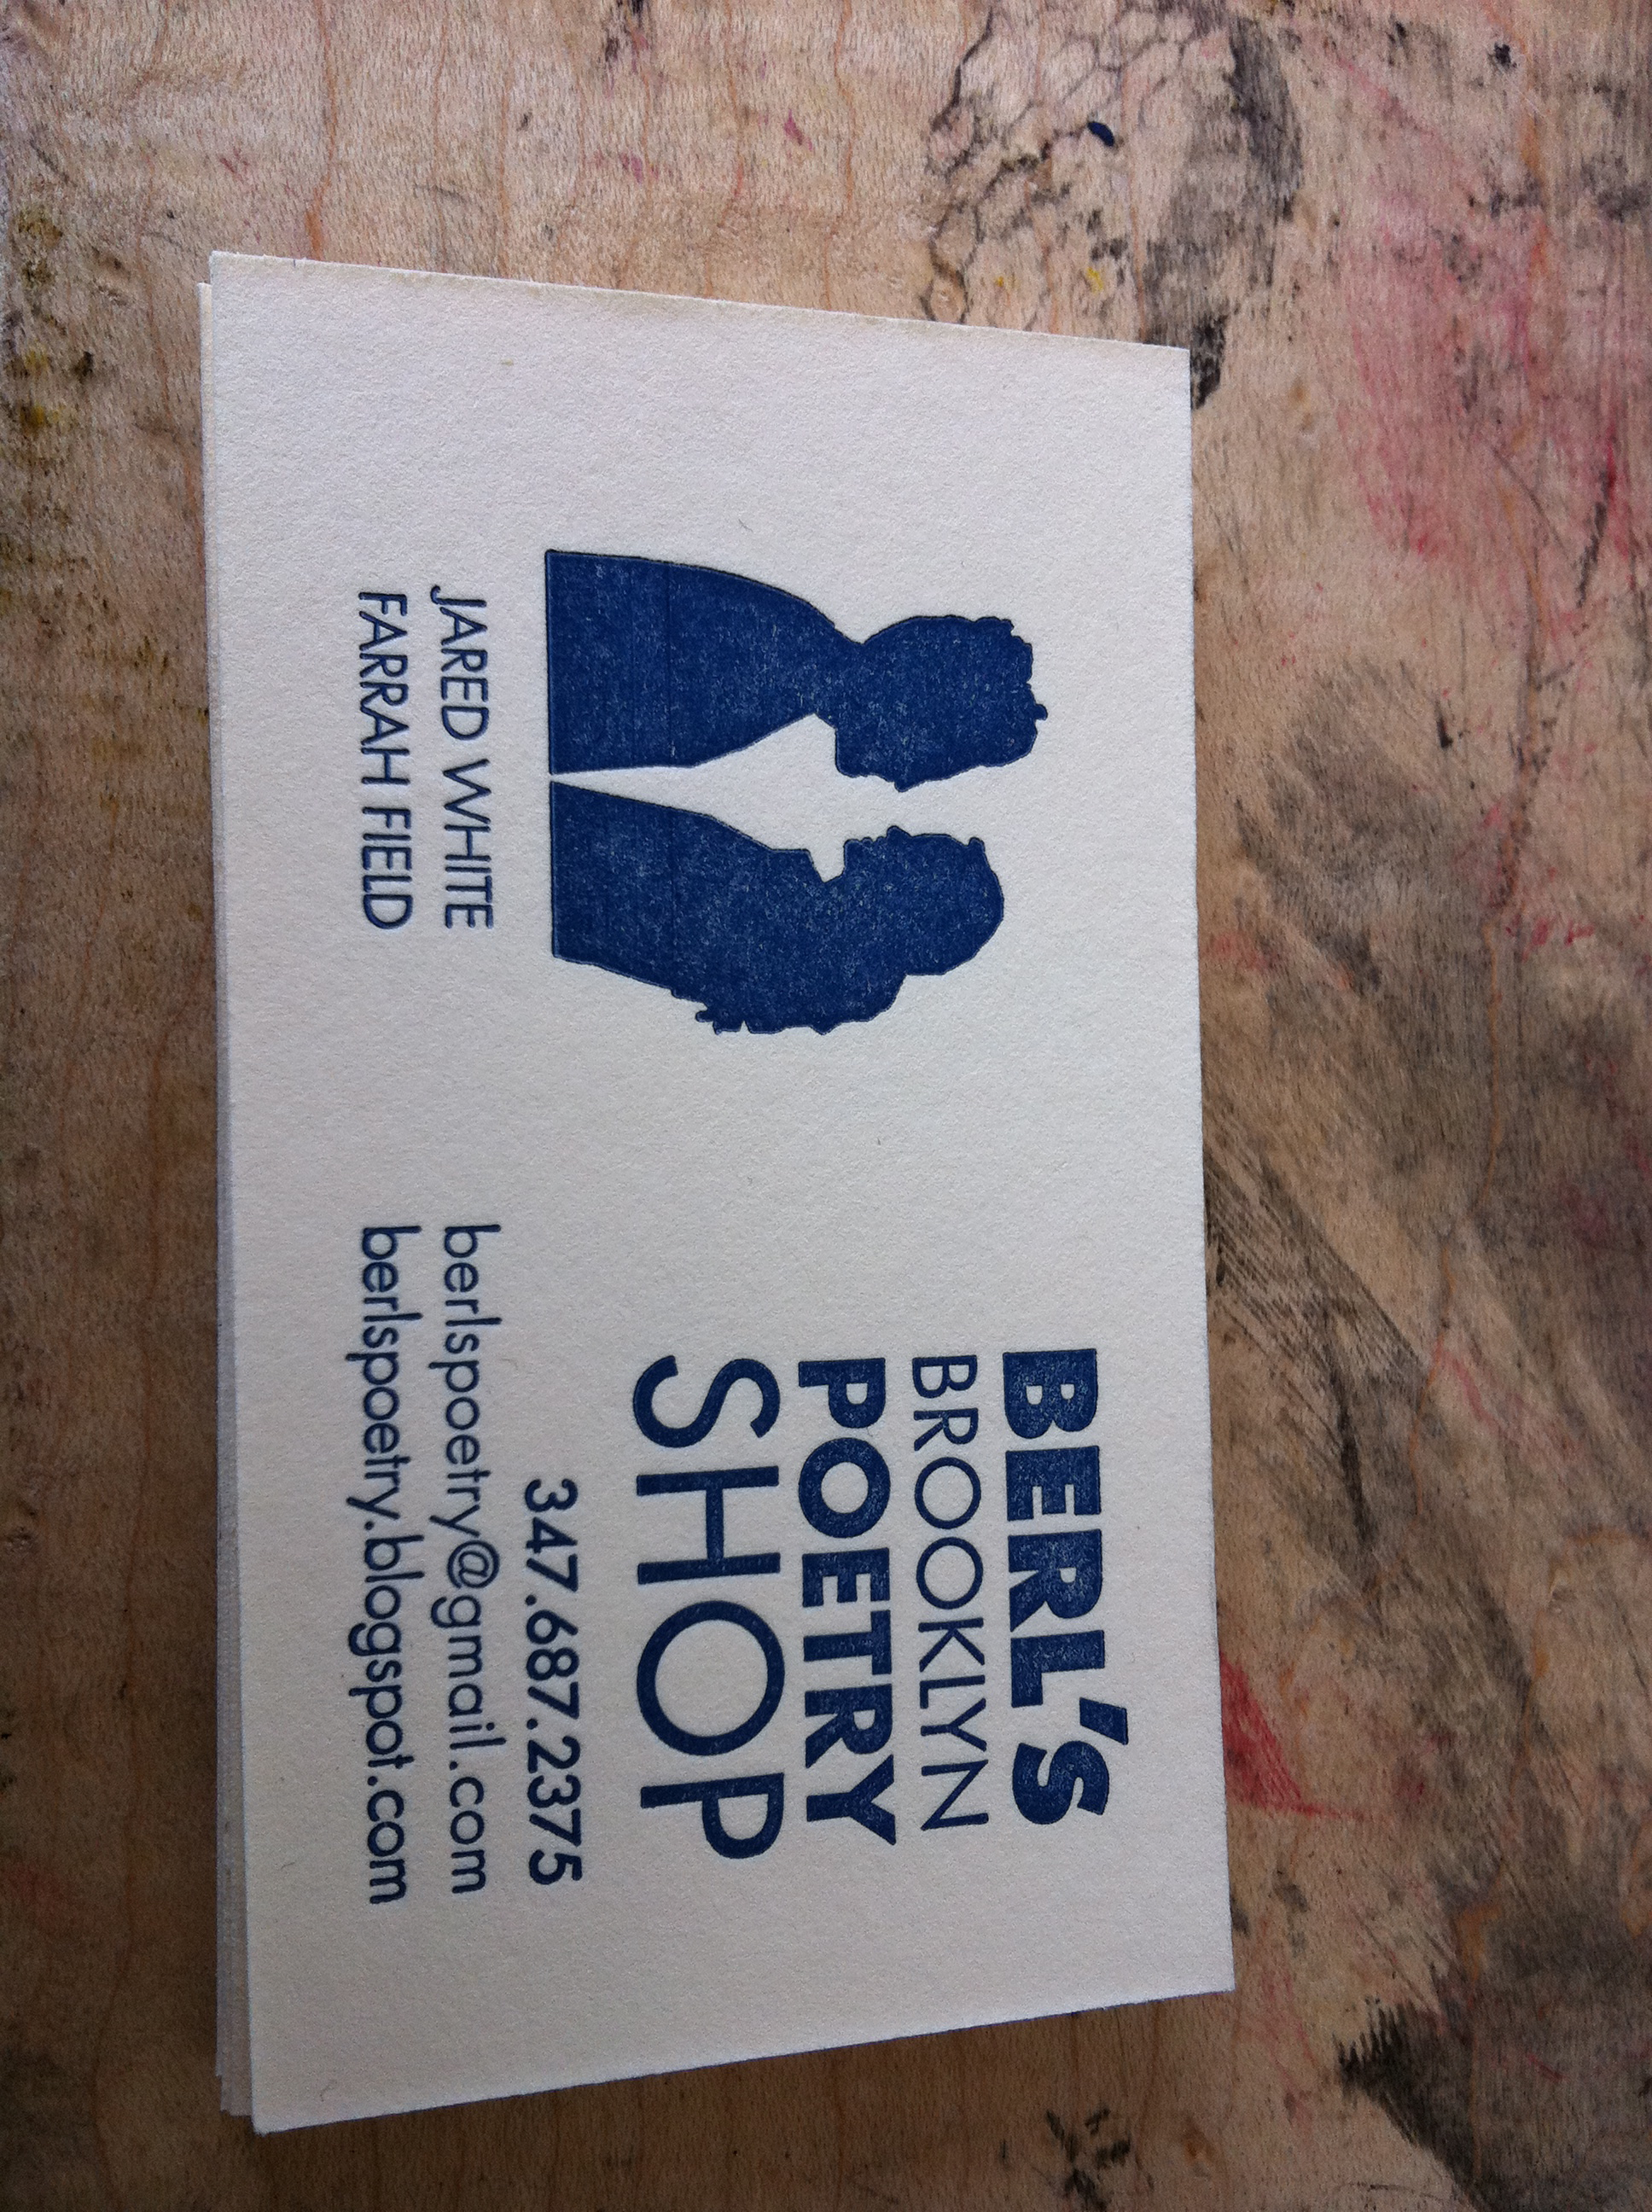 Our original Berl's business card (it also comes in orange!).